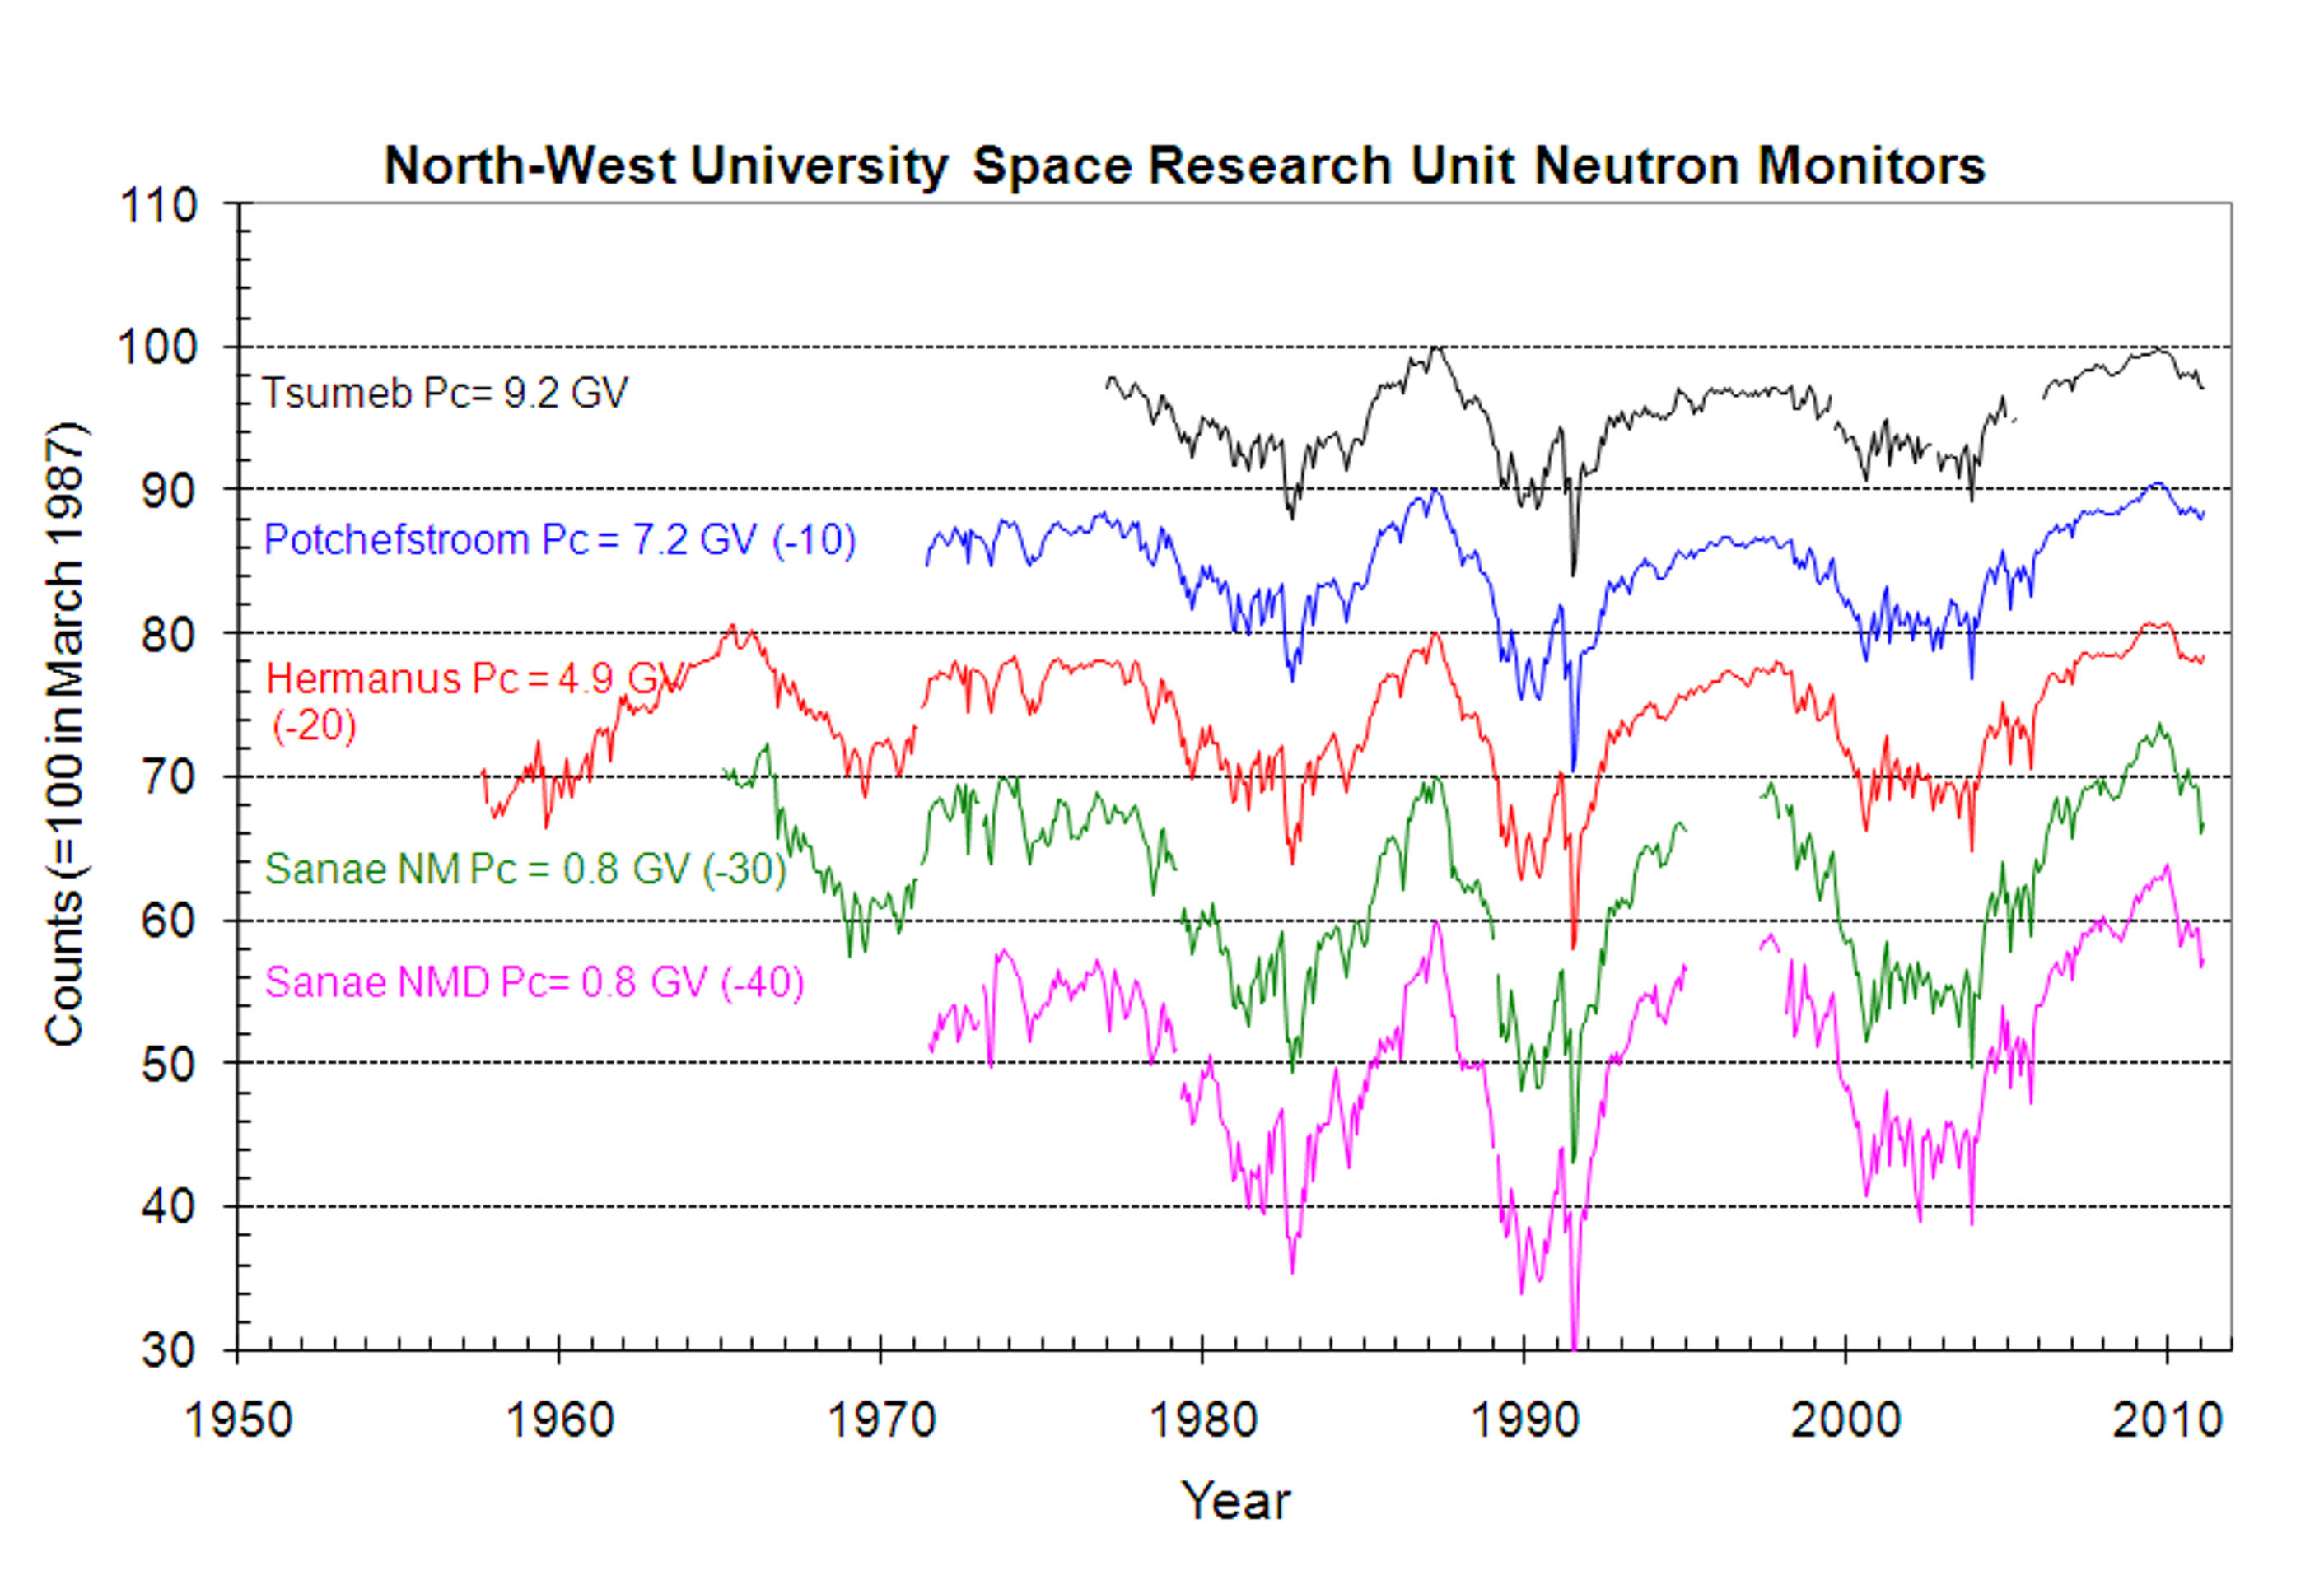 SRU Neutron Monitor Monthly Graphs